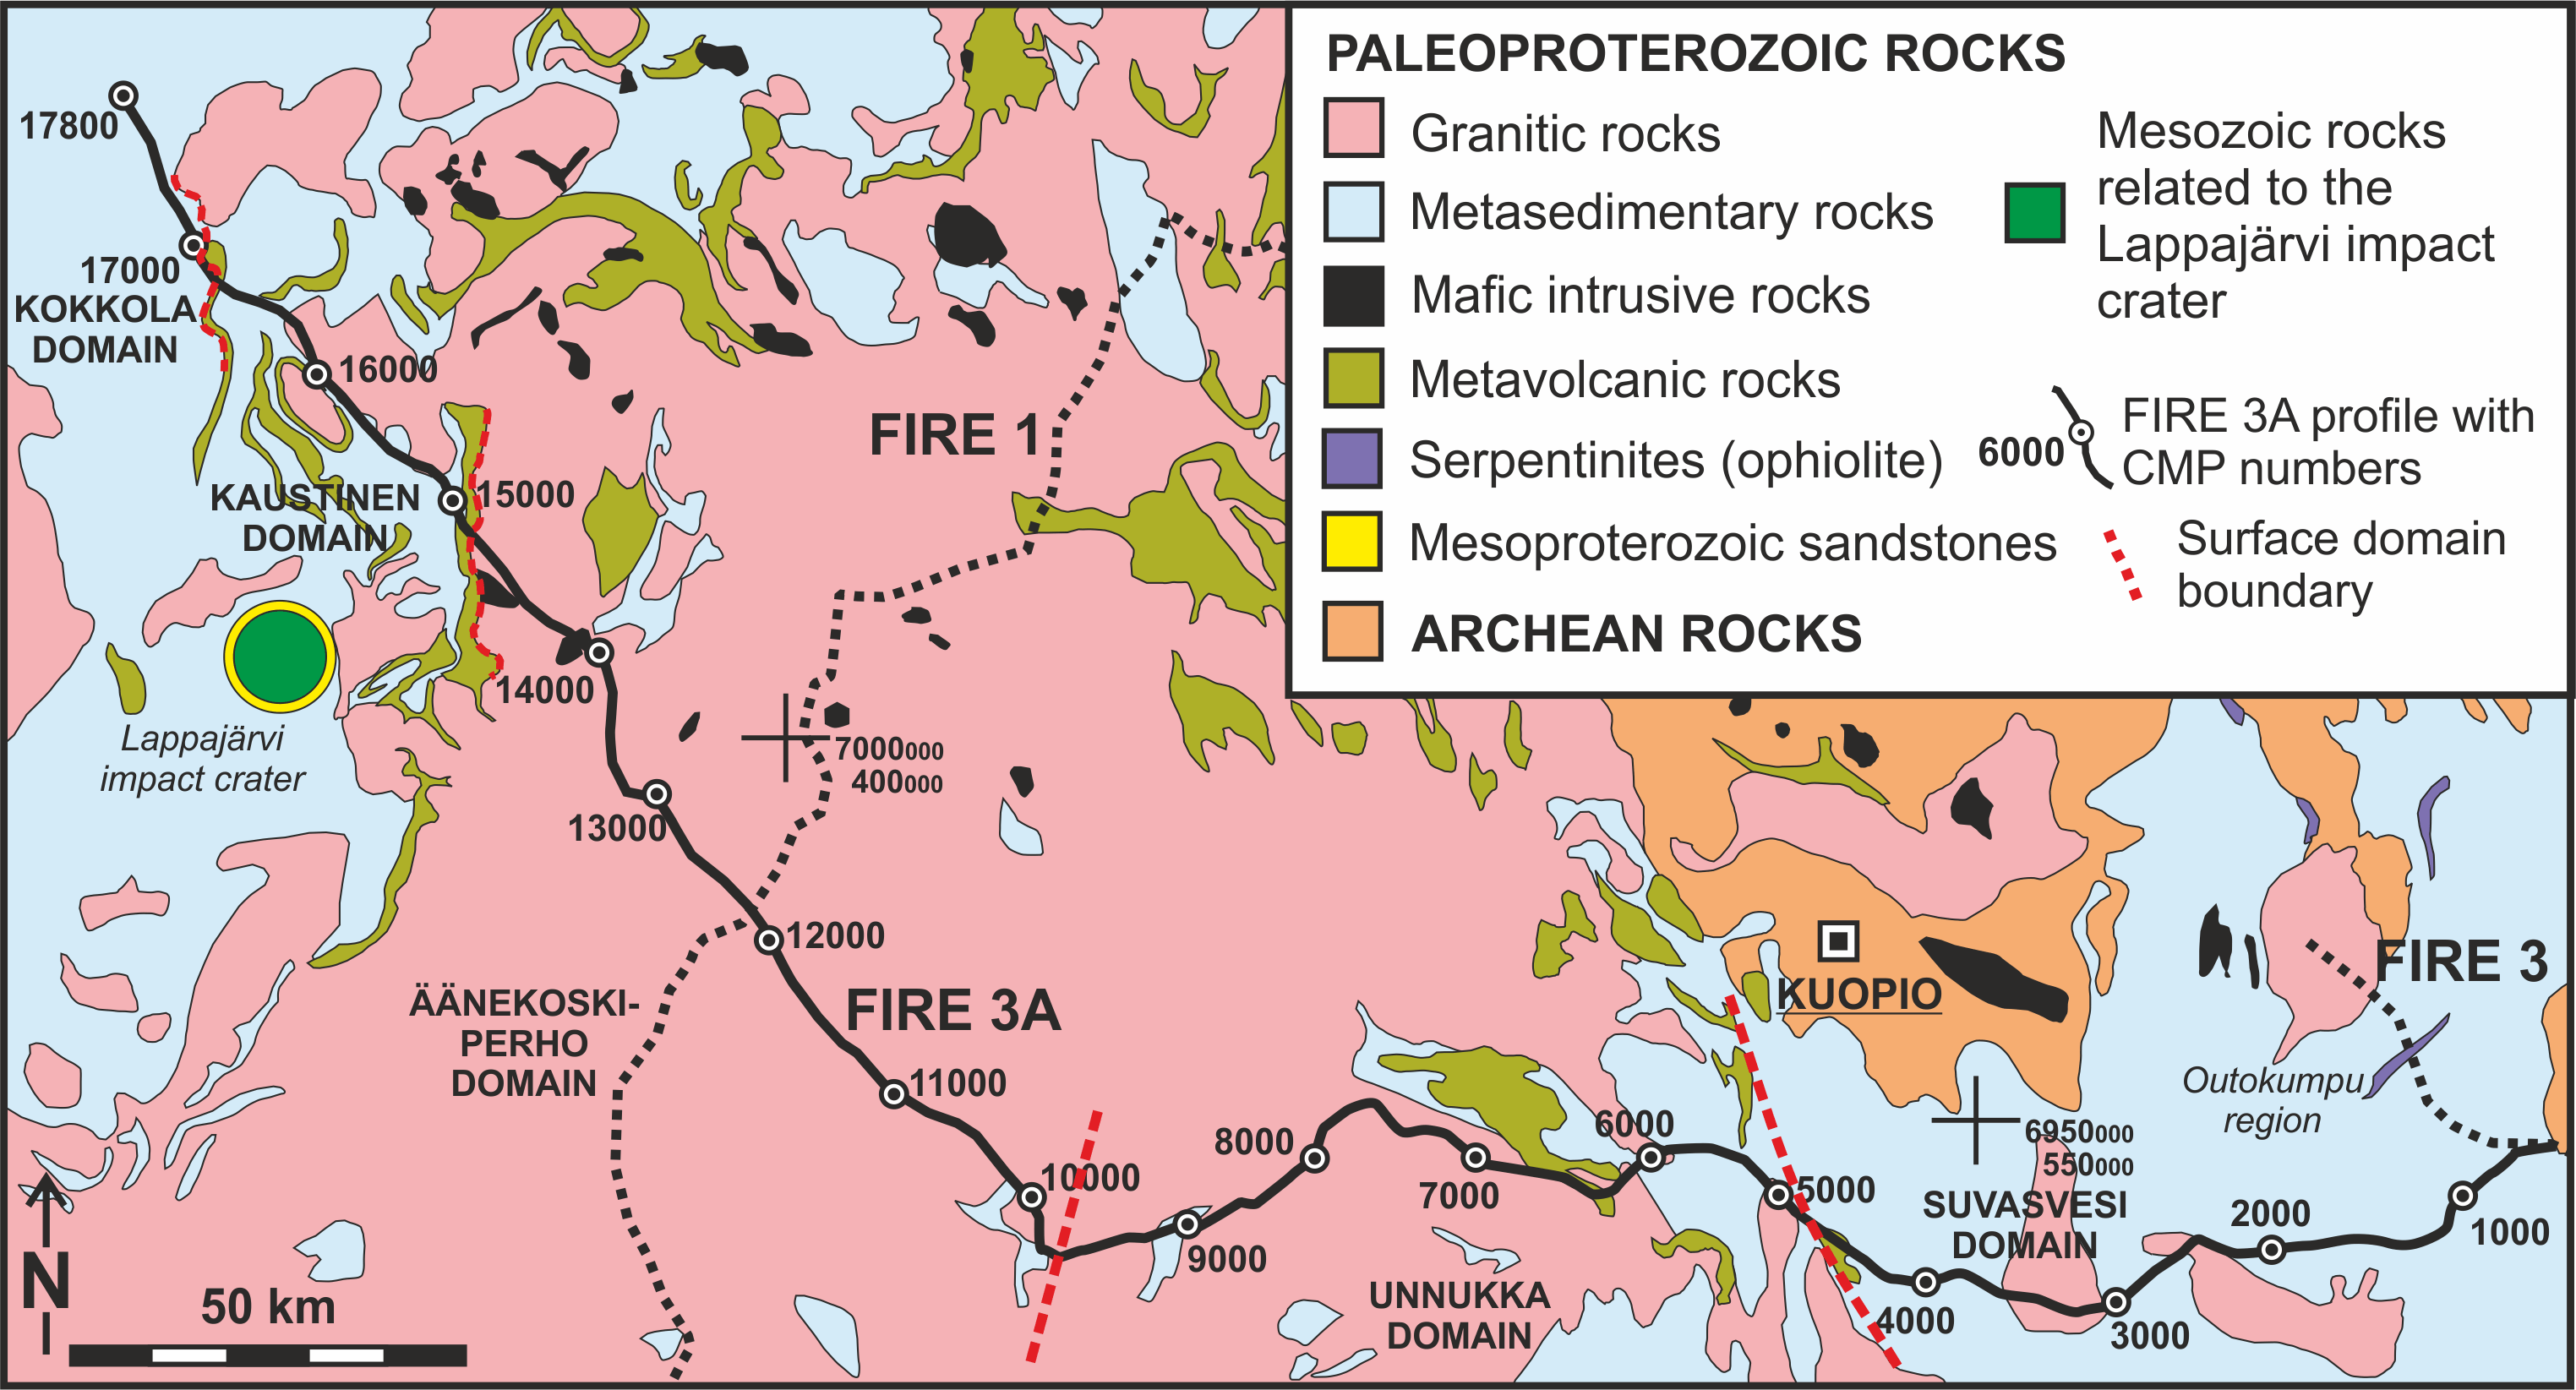 FIRE 3A survey line on top of the geological map